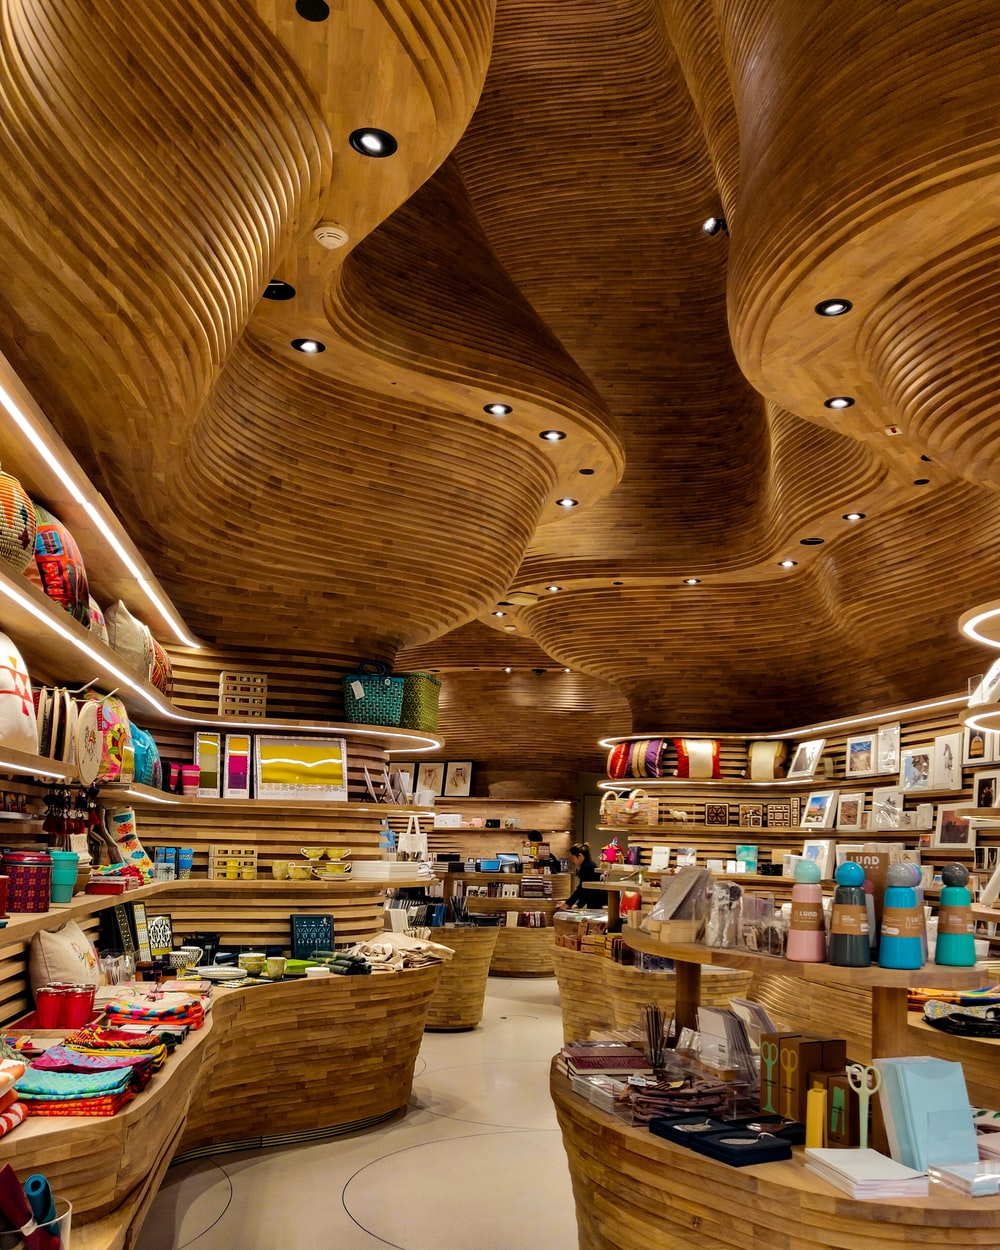 wavy ceiling with shelves under